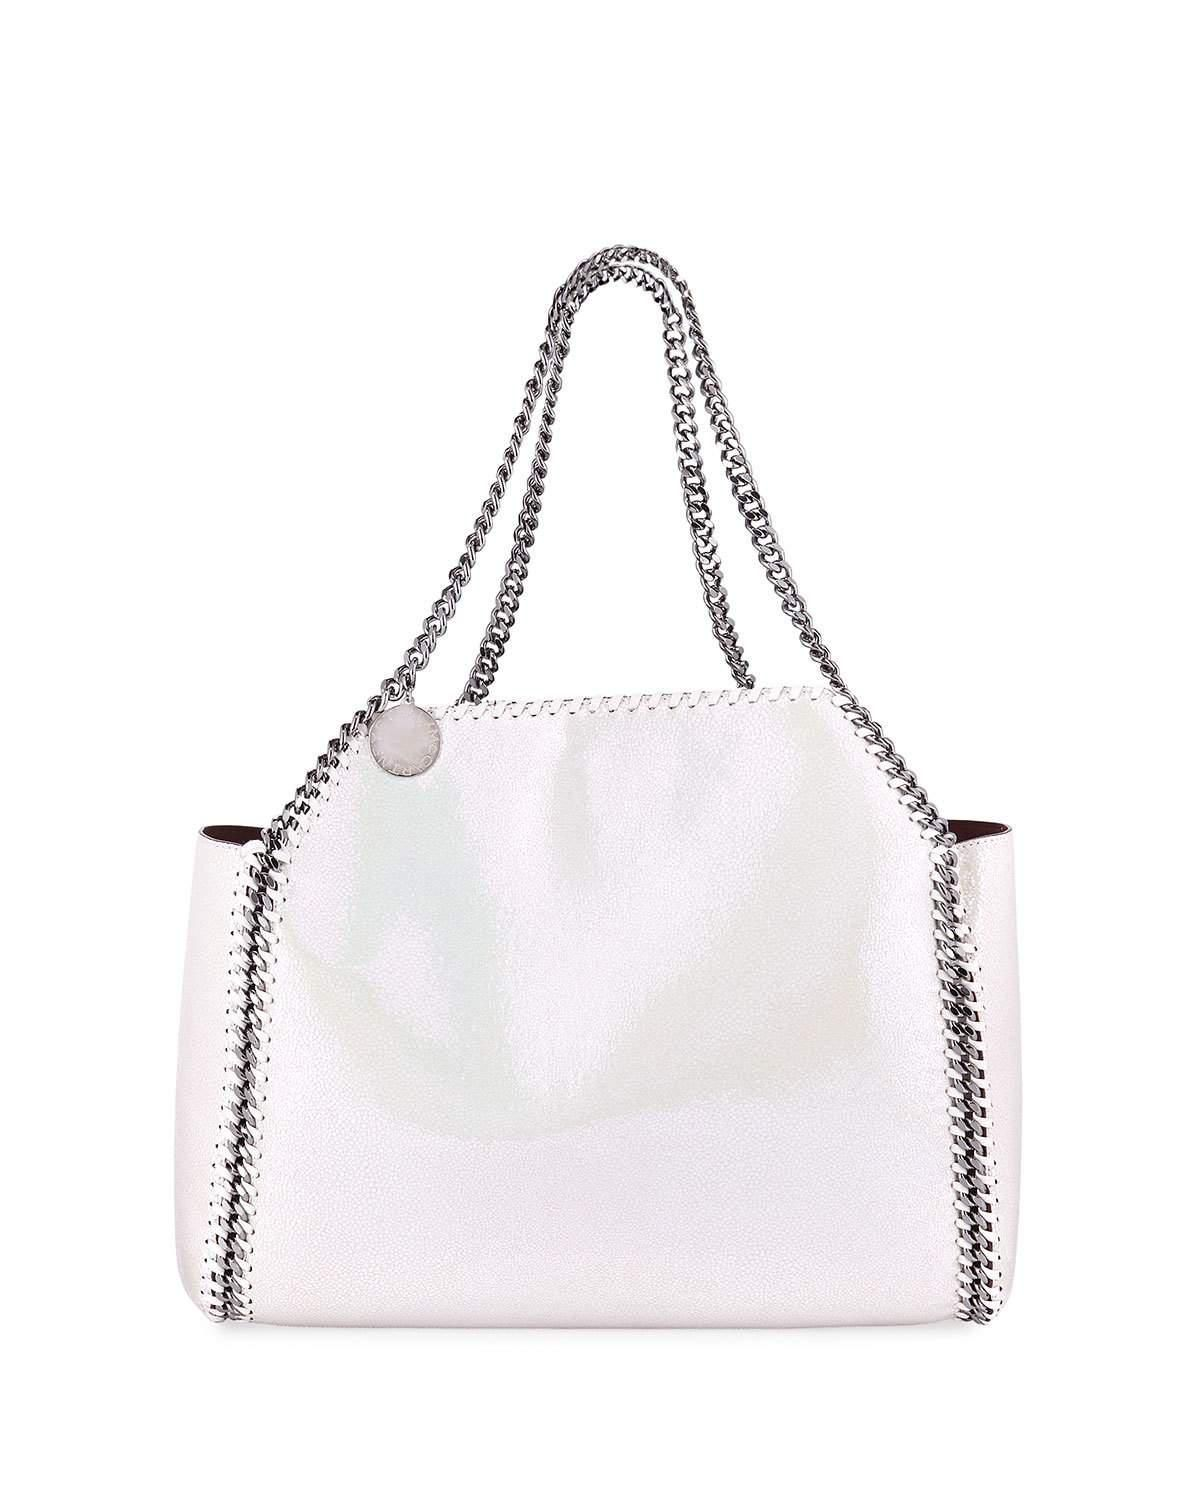 03f16ff657ba Lyst - Stella Mccartney Shaggy Deer Falabella Medium Iridescent Reversible Tote  Bag in White